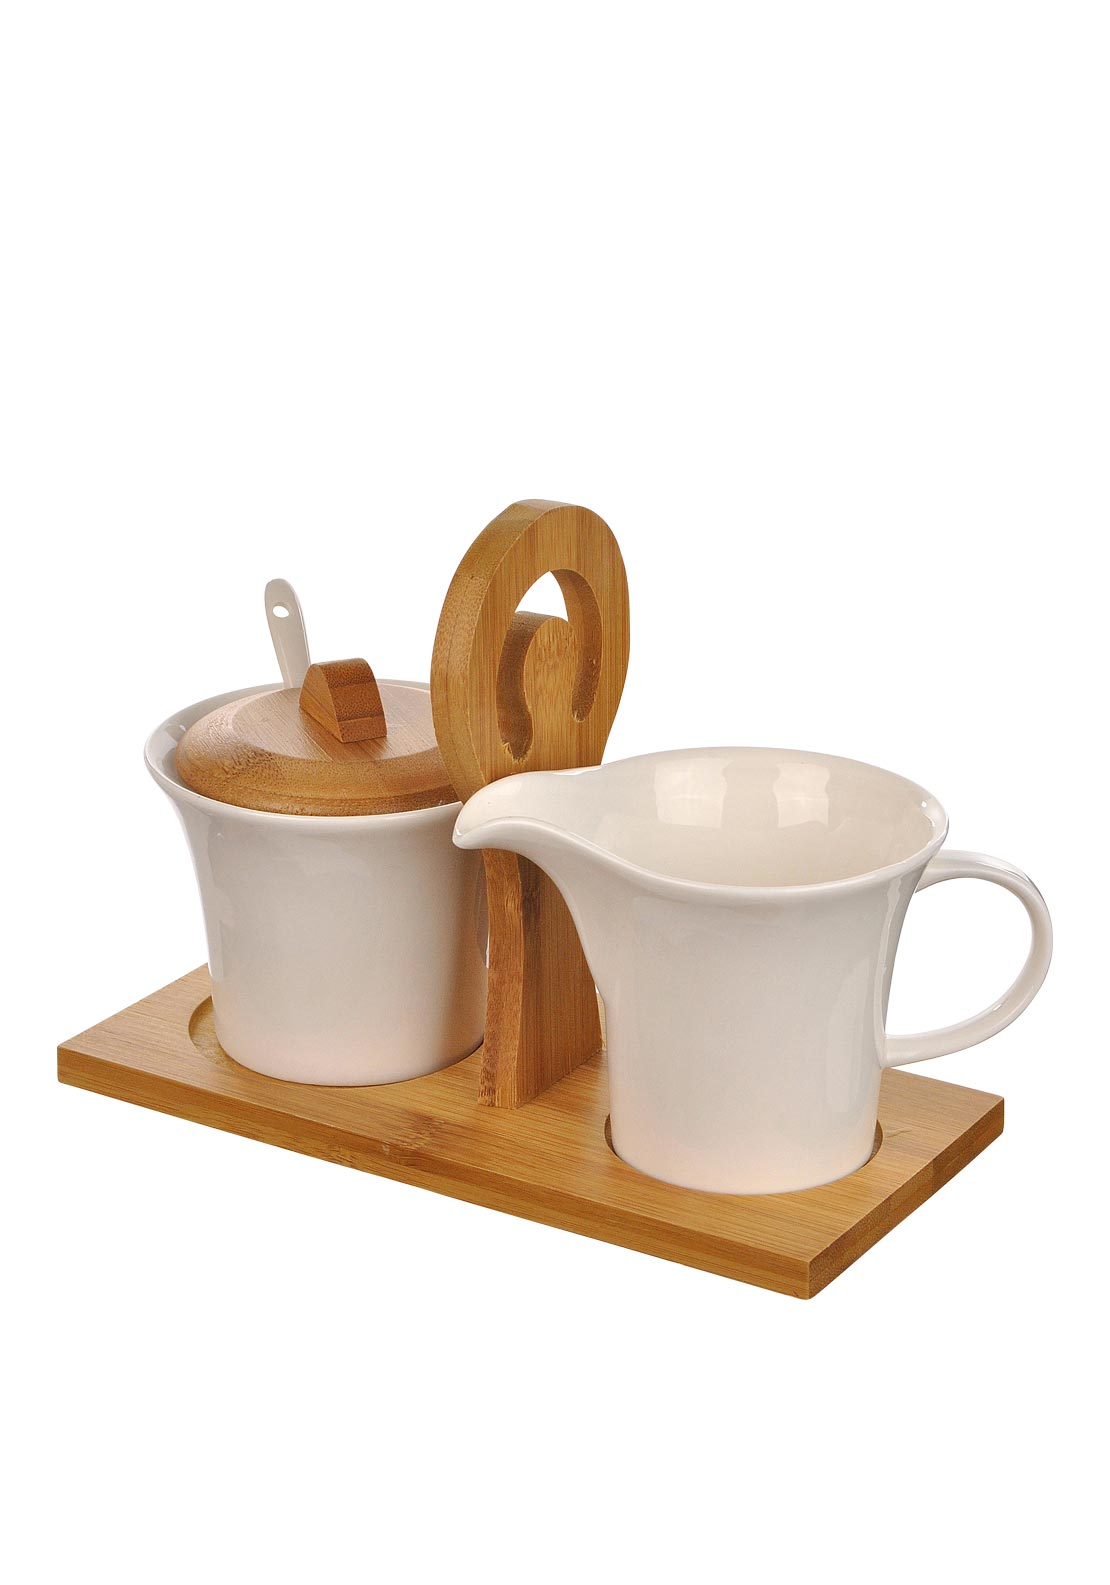 Slaneyside Pottery Sugar and Cream Set, White